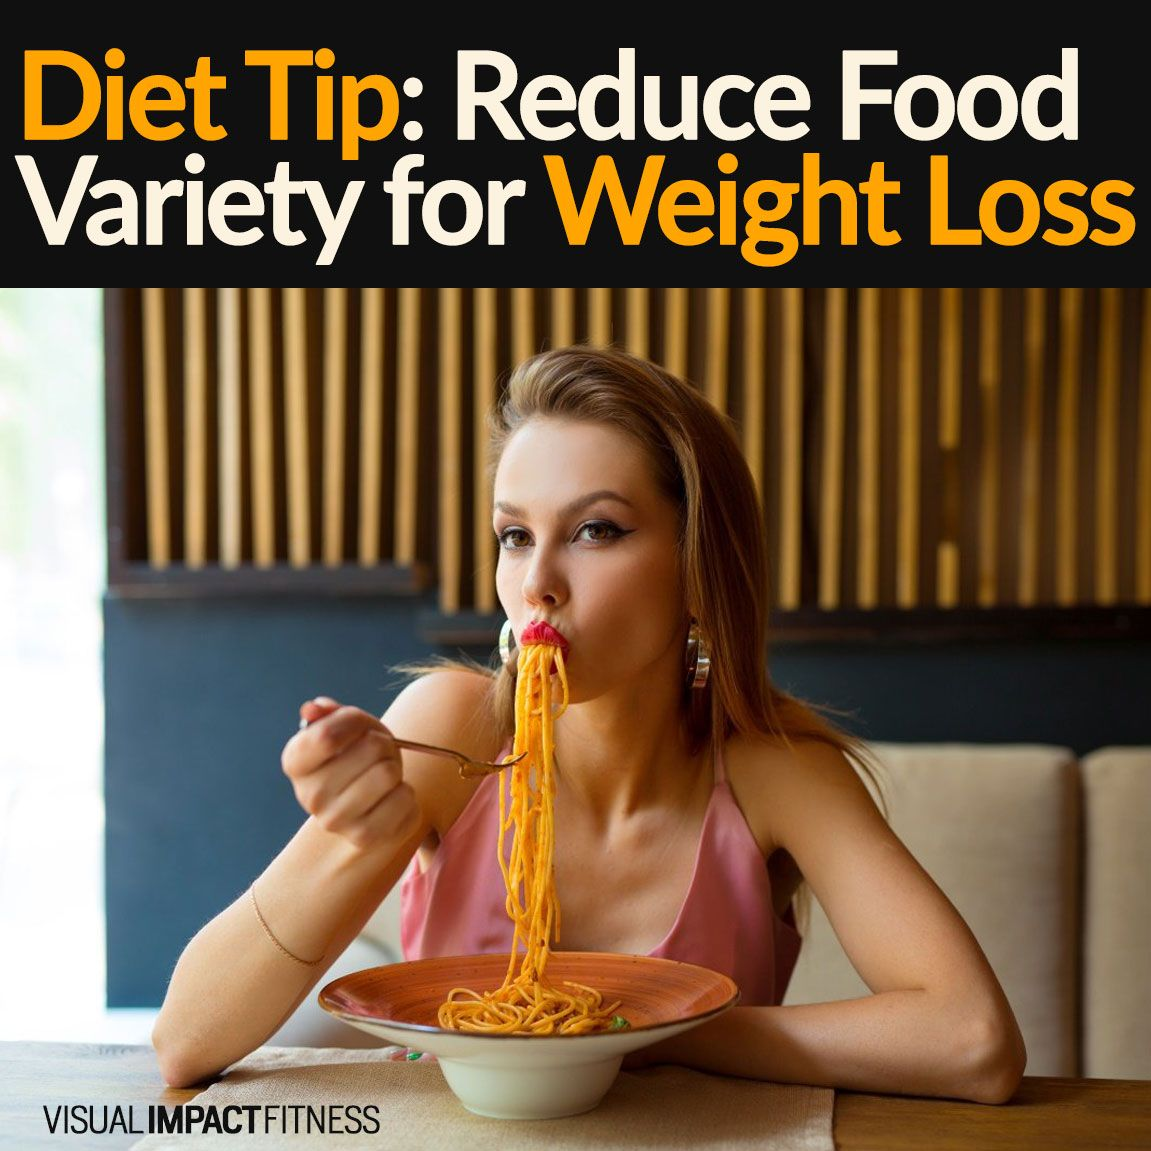 When you limit food variety you naturally reduce food palatability. You stop eating when you are full which makes dieting and weight loss easier. #diettipsforbeginners #simplebeginnerdiettips #diettipsfast #healthydiettips #simplediettips #ketodiettips #fooddiettips #dietingmotivation #mediterraneandieting #cleaneatingdieting #detoxdieting